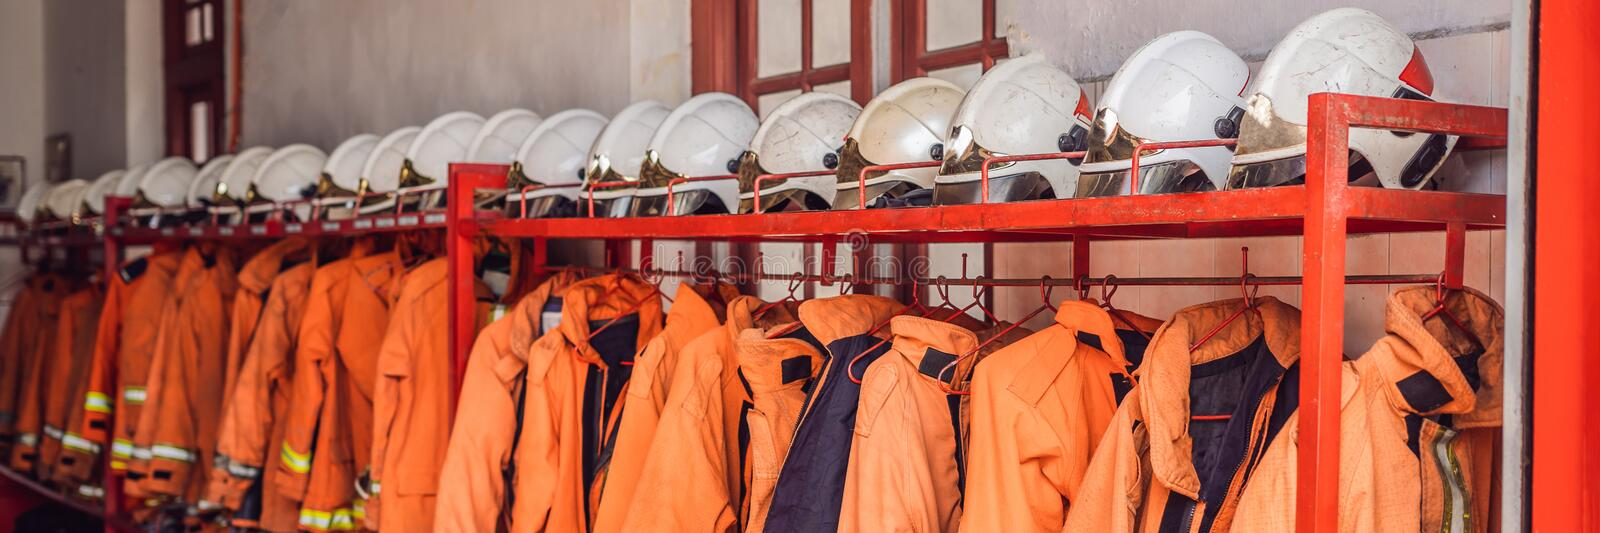 Close up of Fireman coats, helmets and boots wait for the next call. Dressing room of the volunteer fire department BANNER long fo royalty free stock images